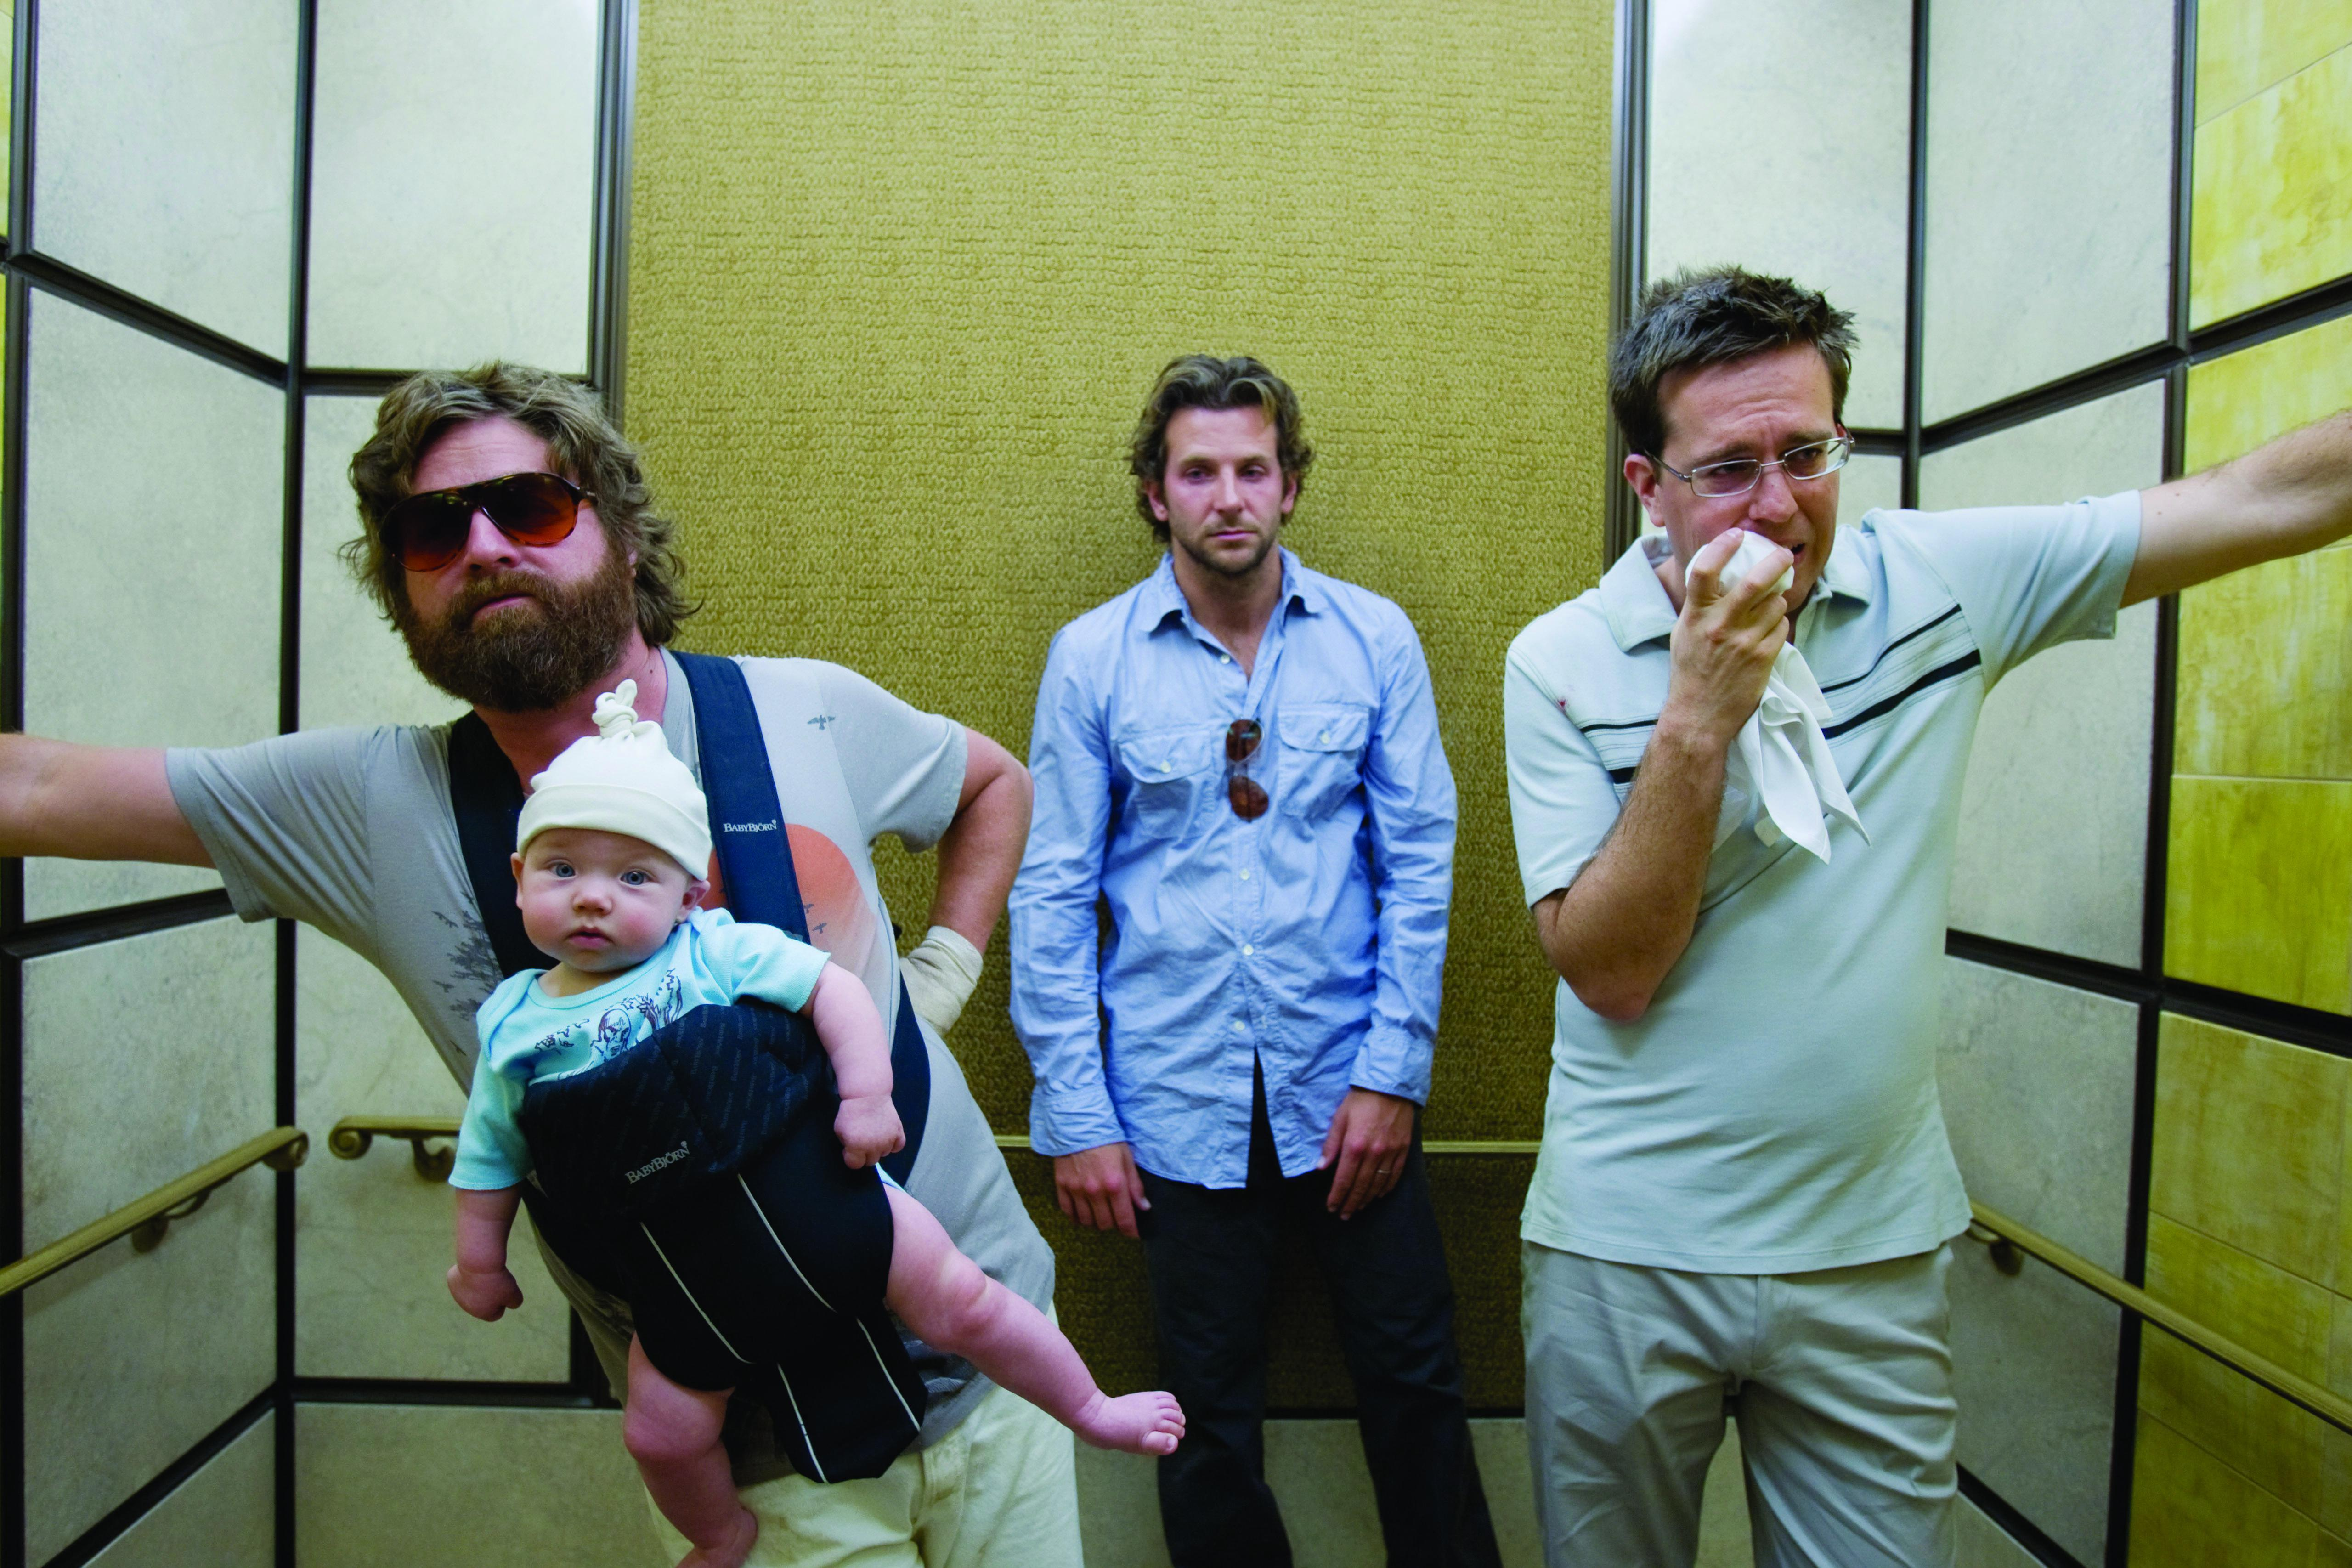 Zach Galifianakis, Bradley Cooper and Ed Helms, The Hangover